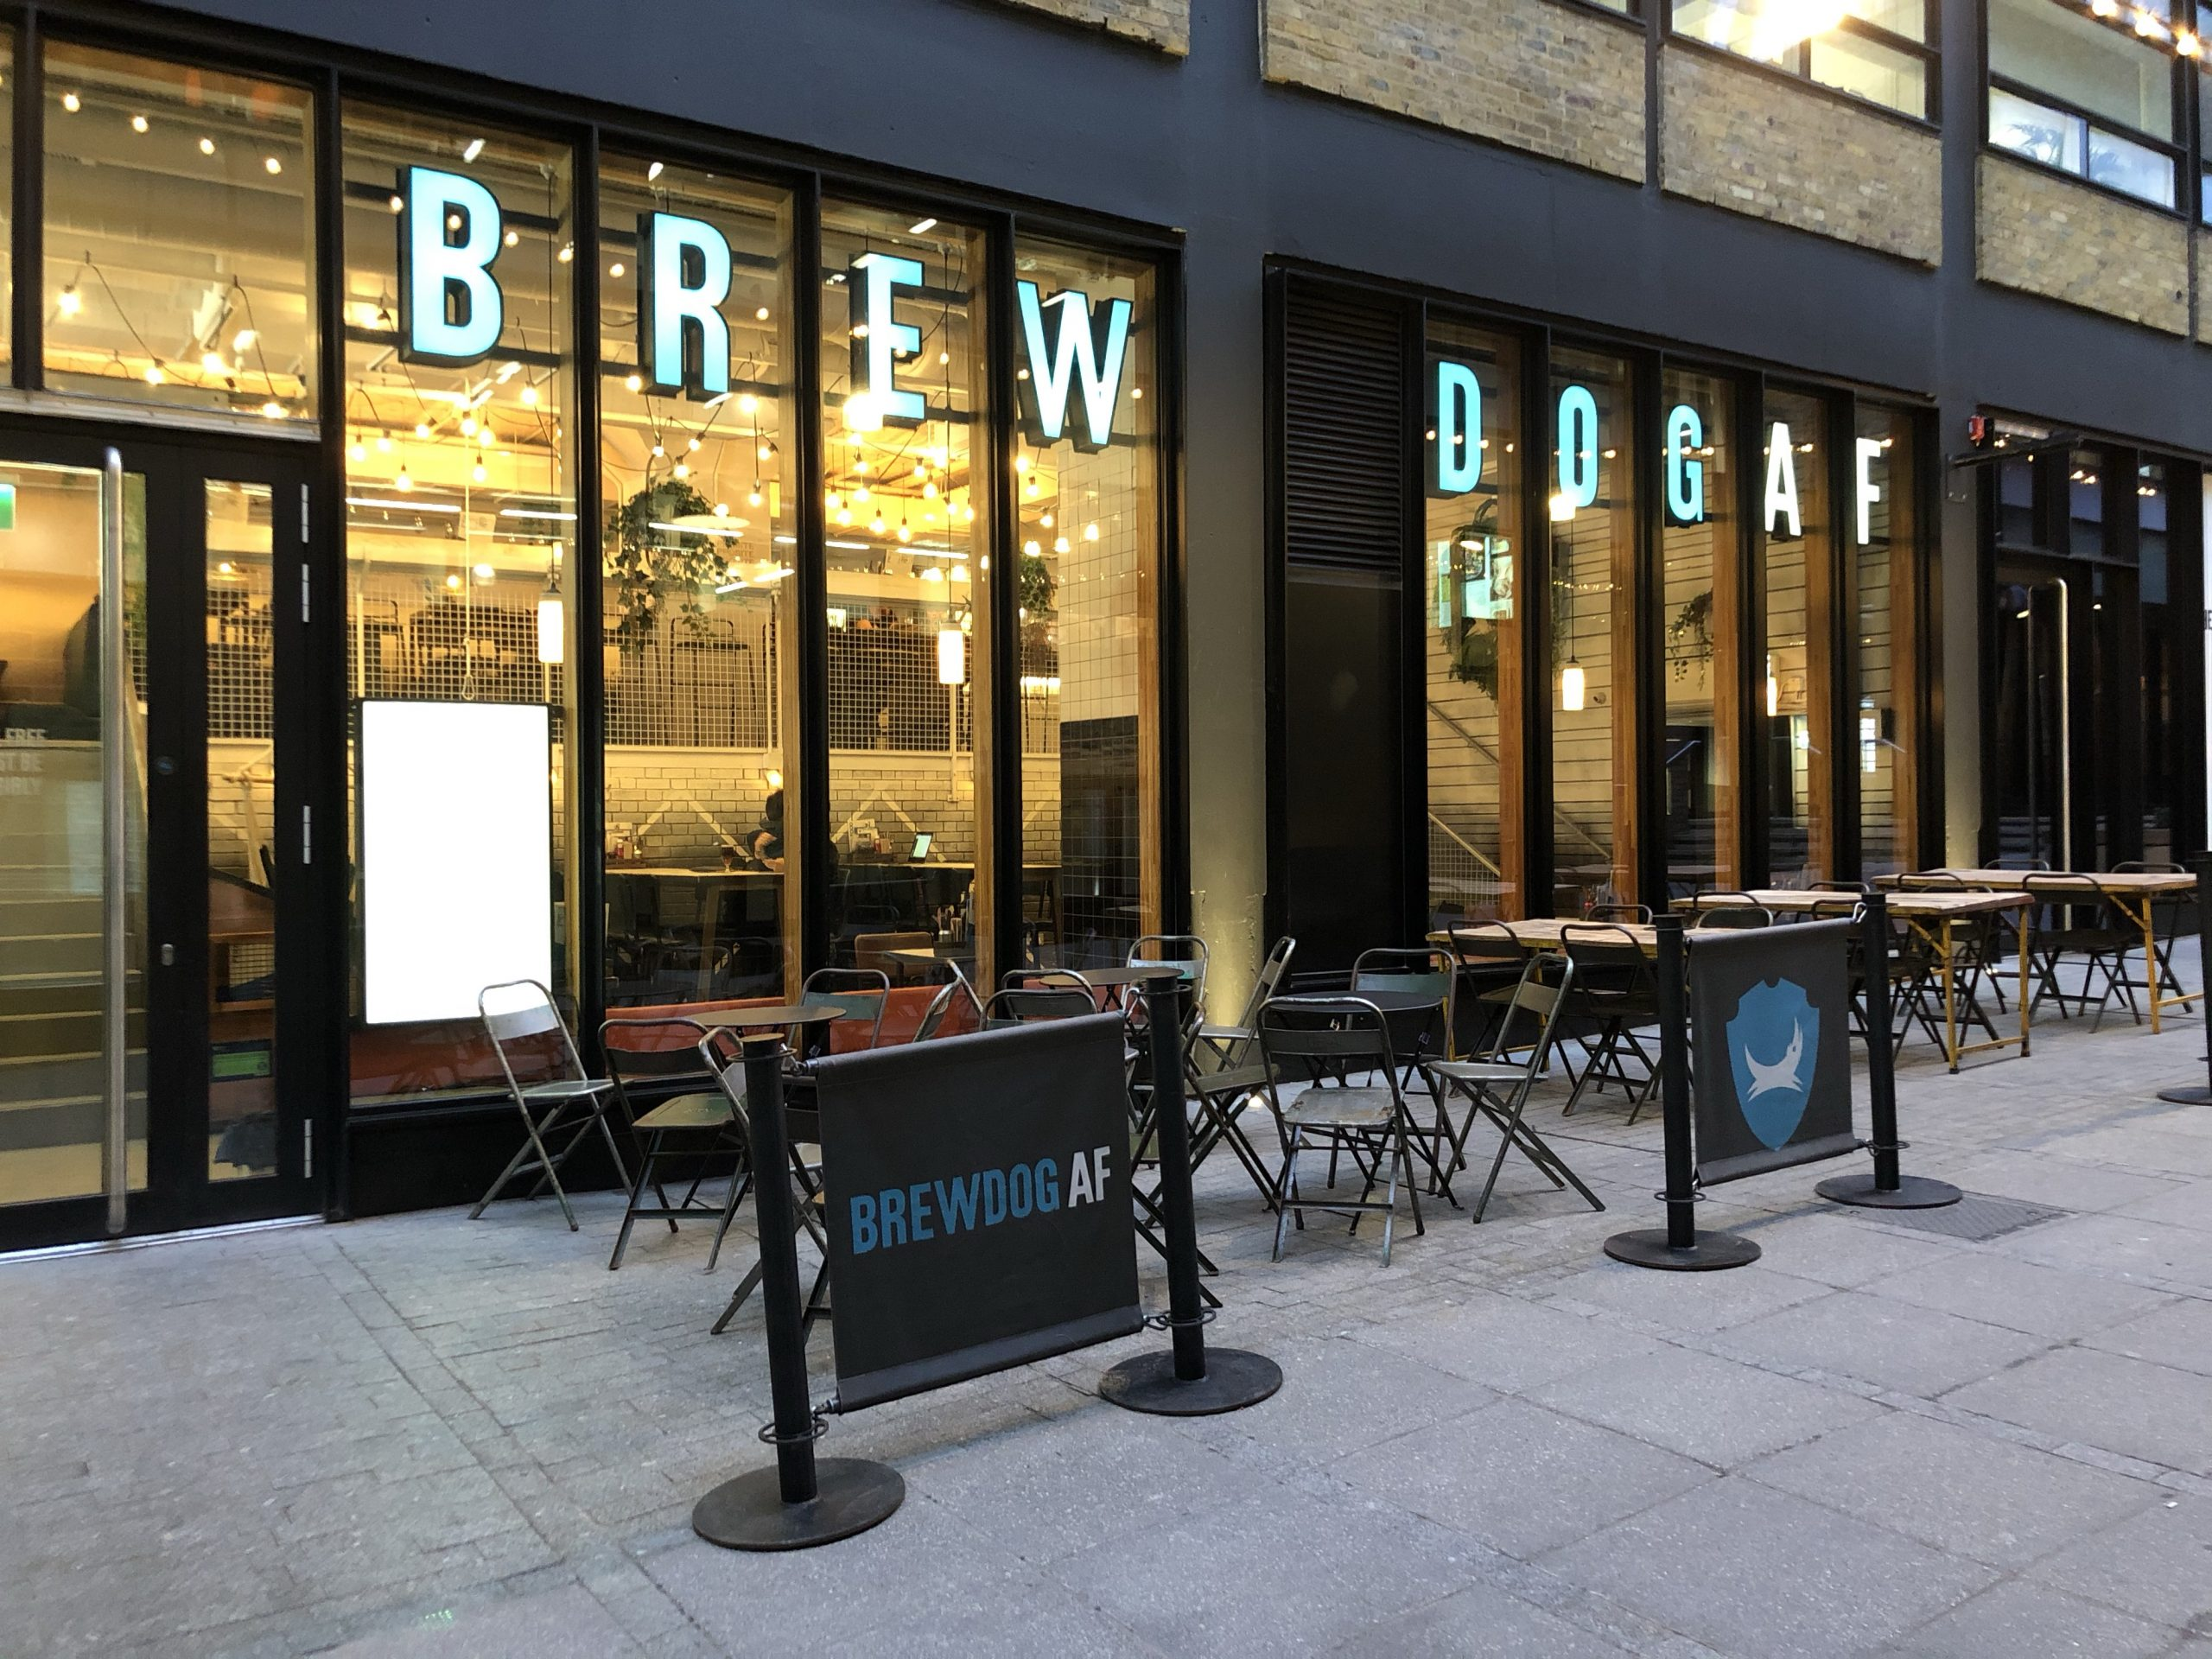 Besuch in London bei Brewdog AF